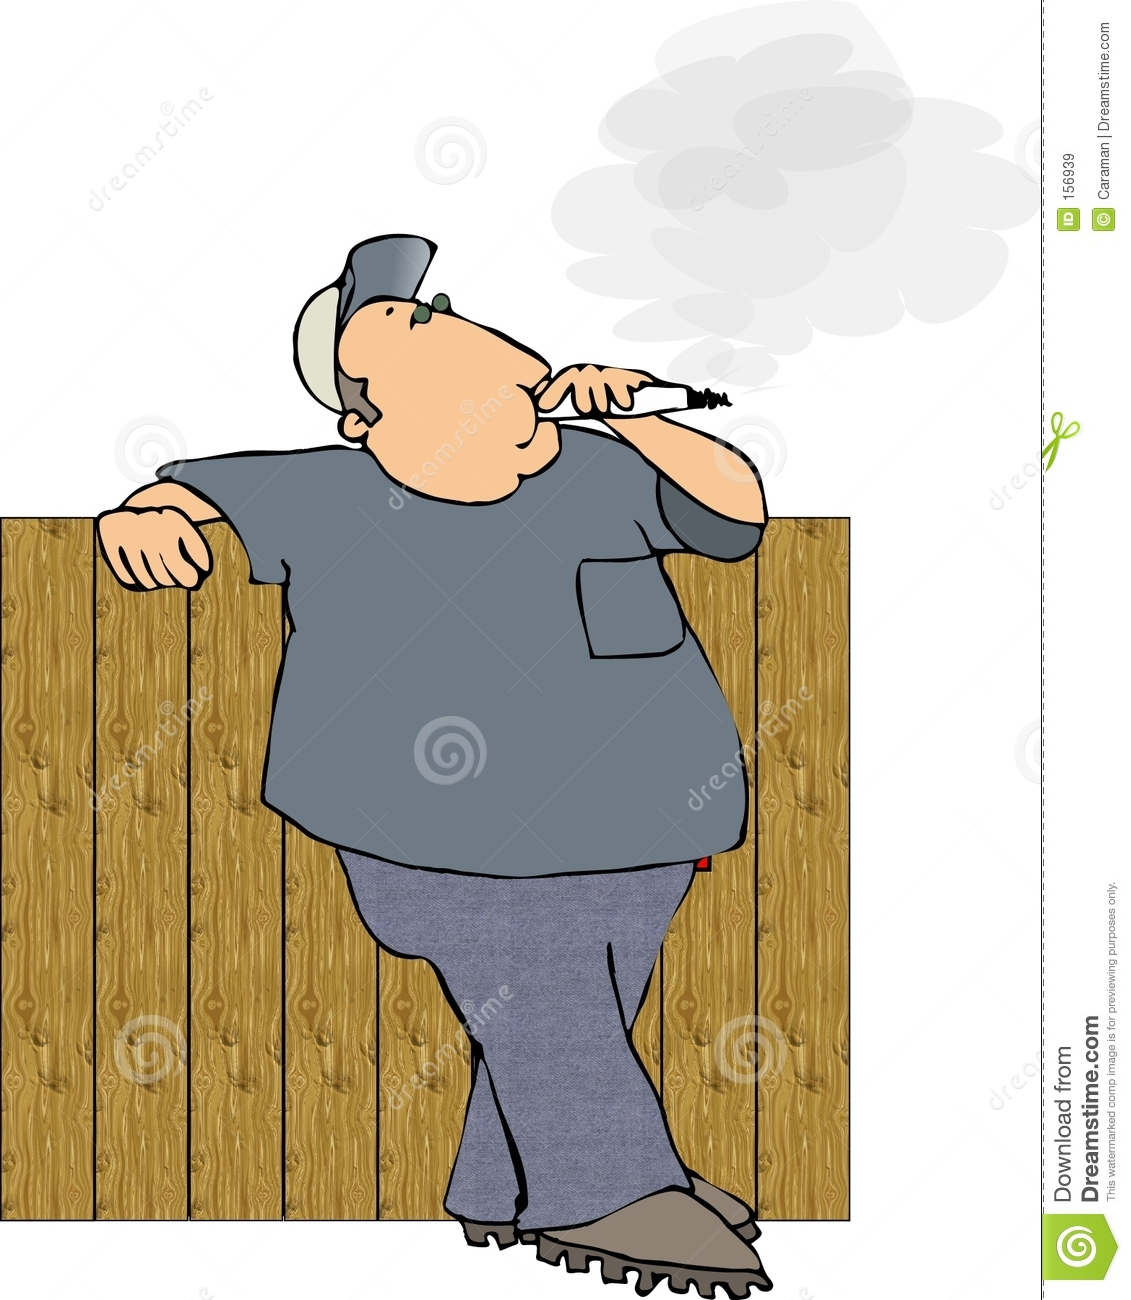 Smoker leaning on a fence